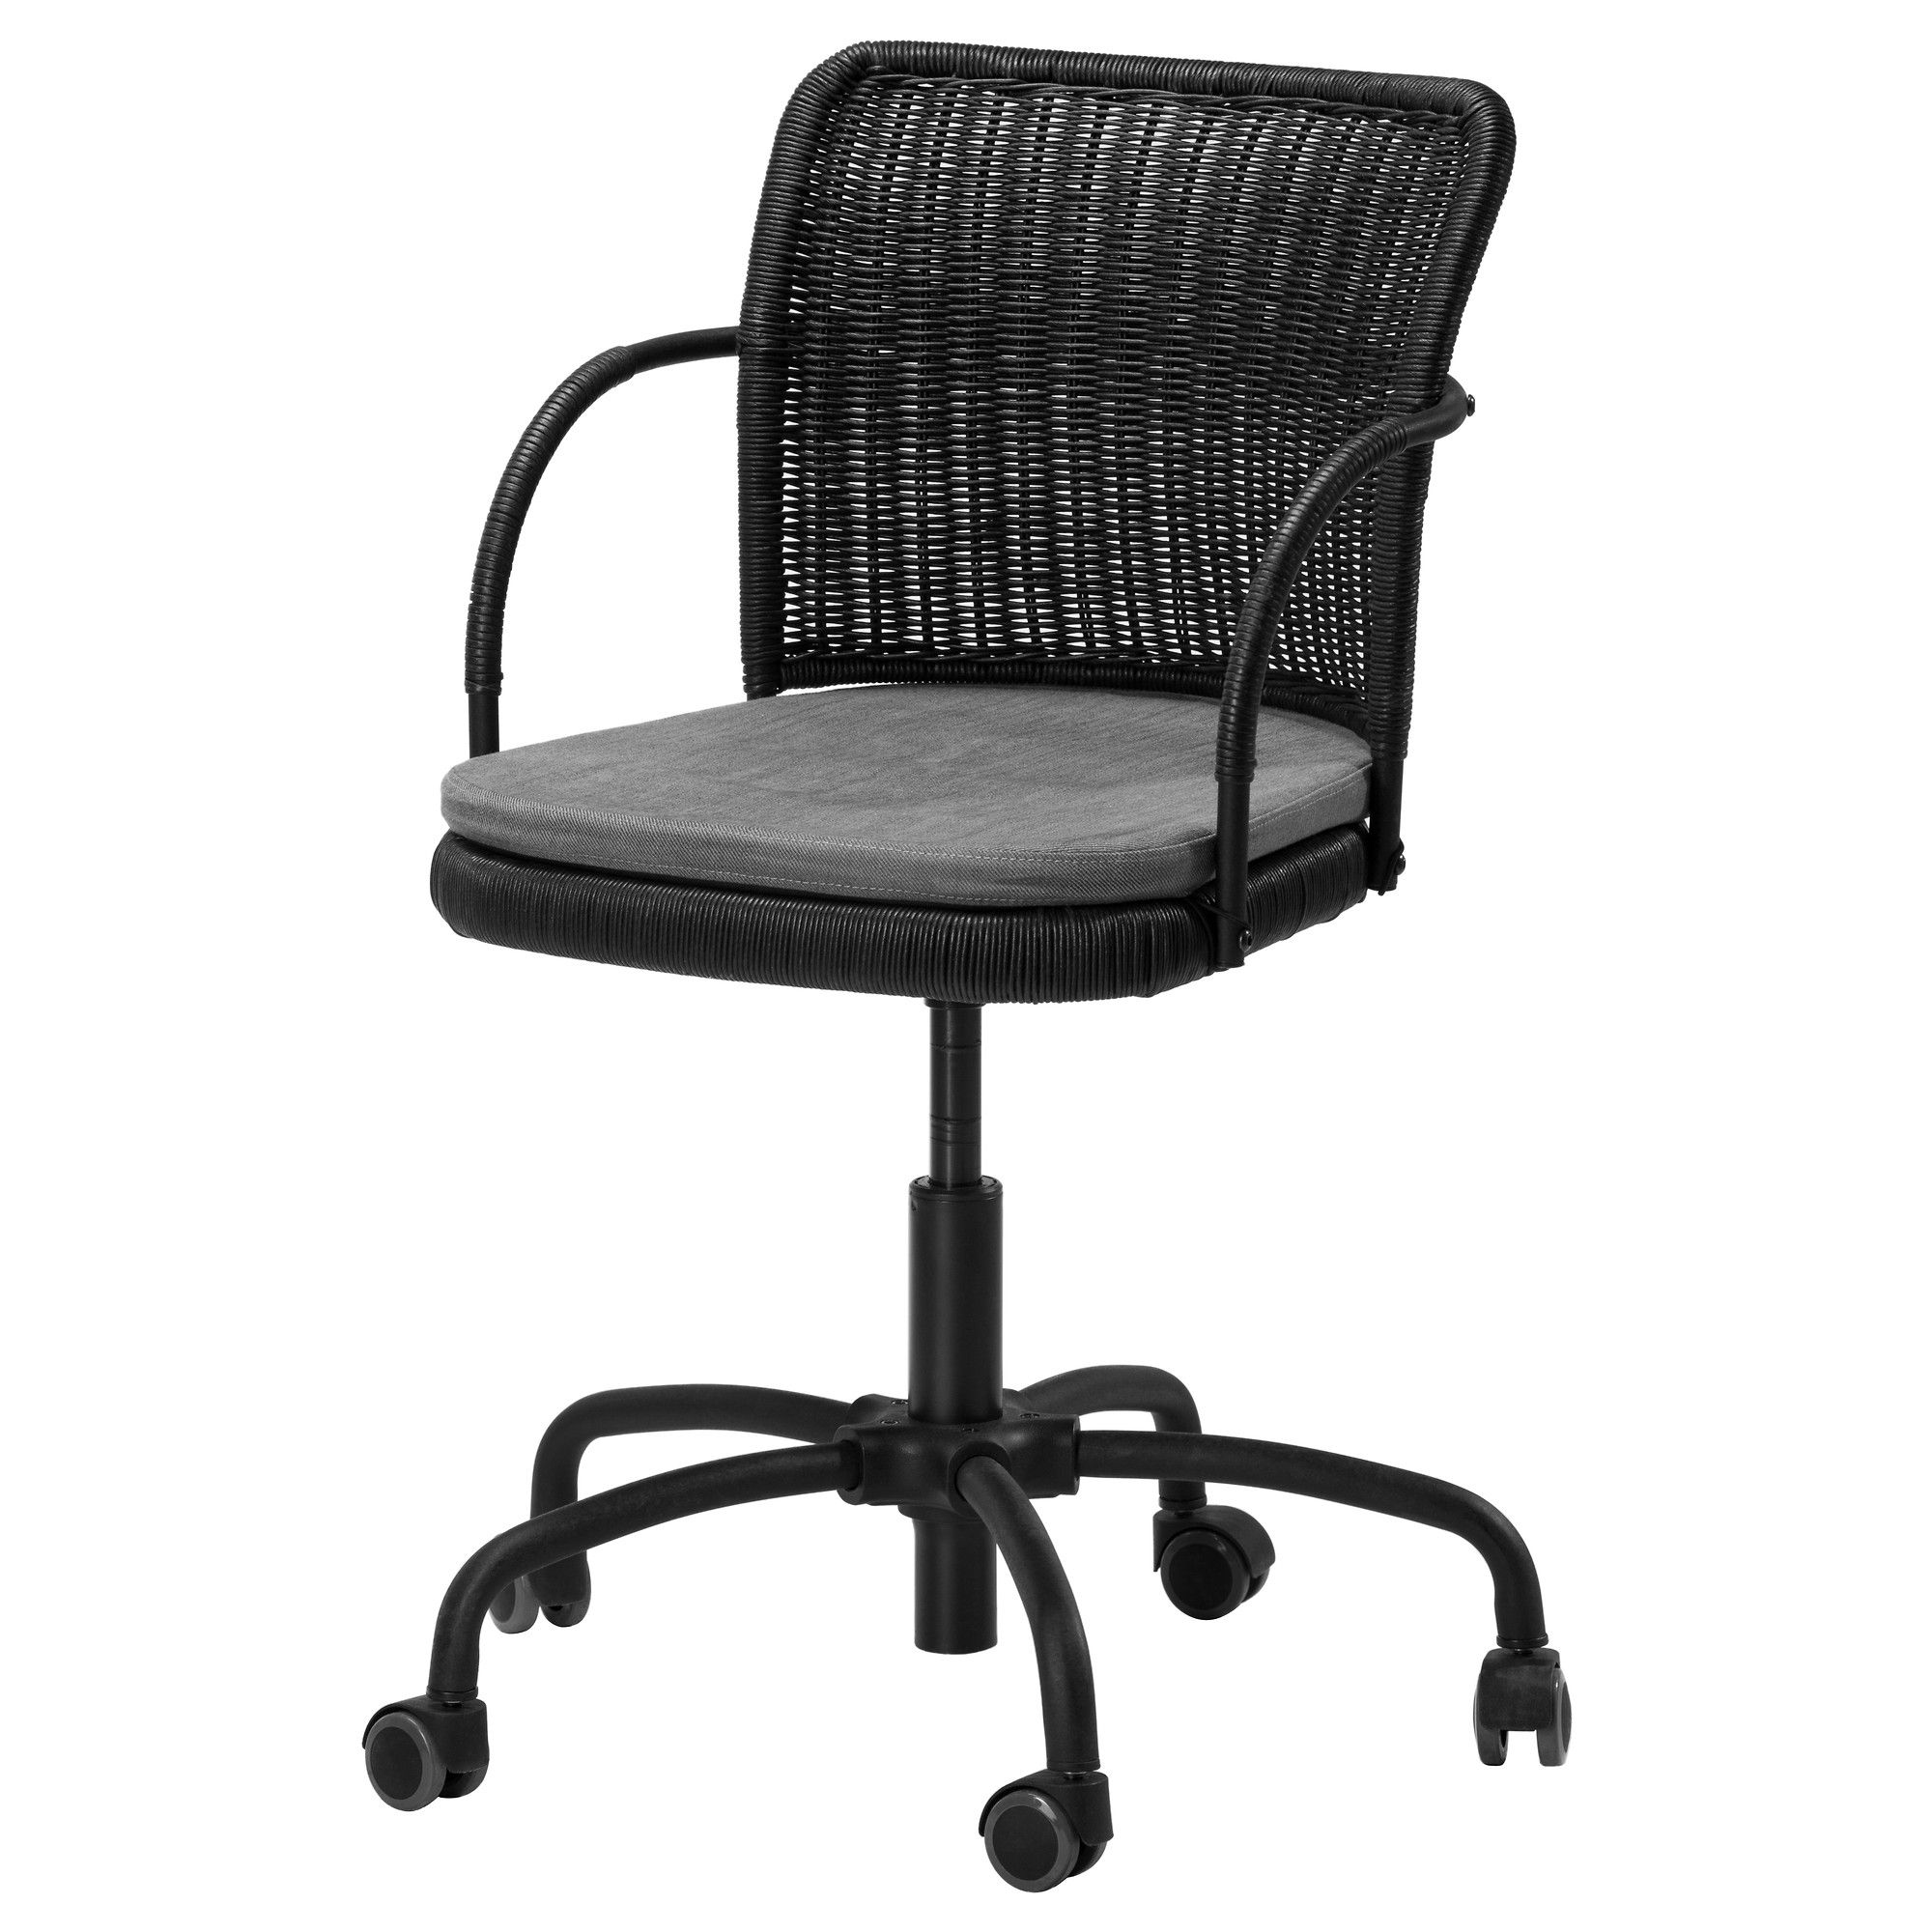 desk chairs ikea table and gumtree belfast gregor swivel chair black svanby gray 100 nail